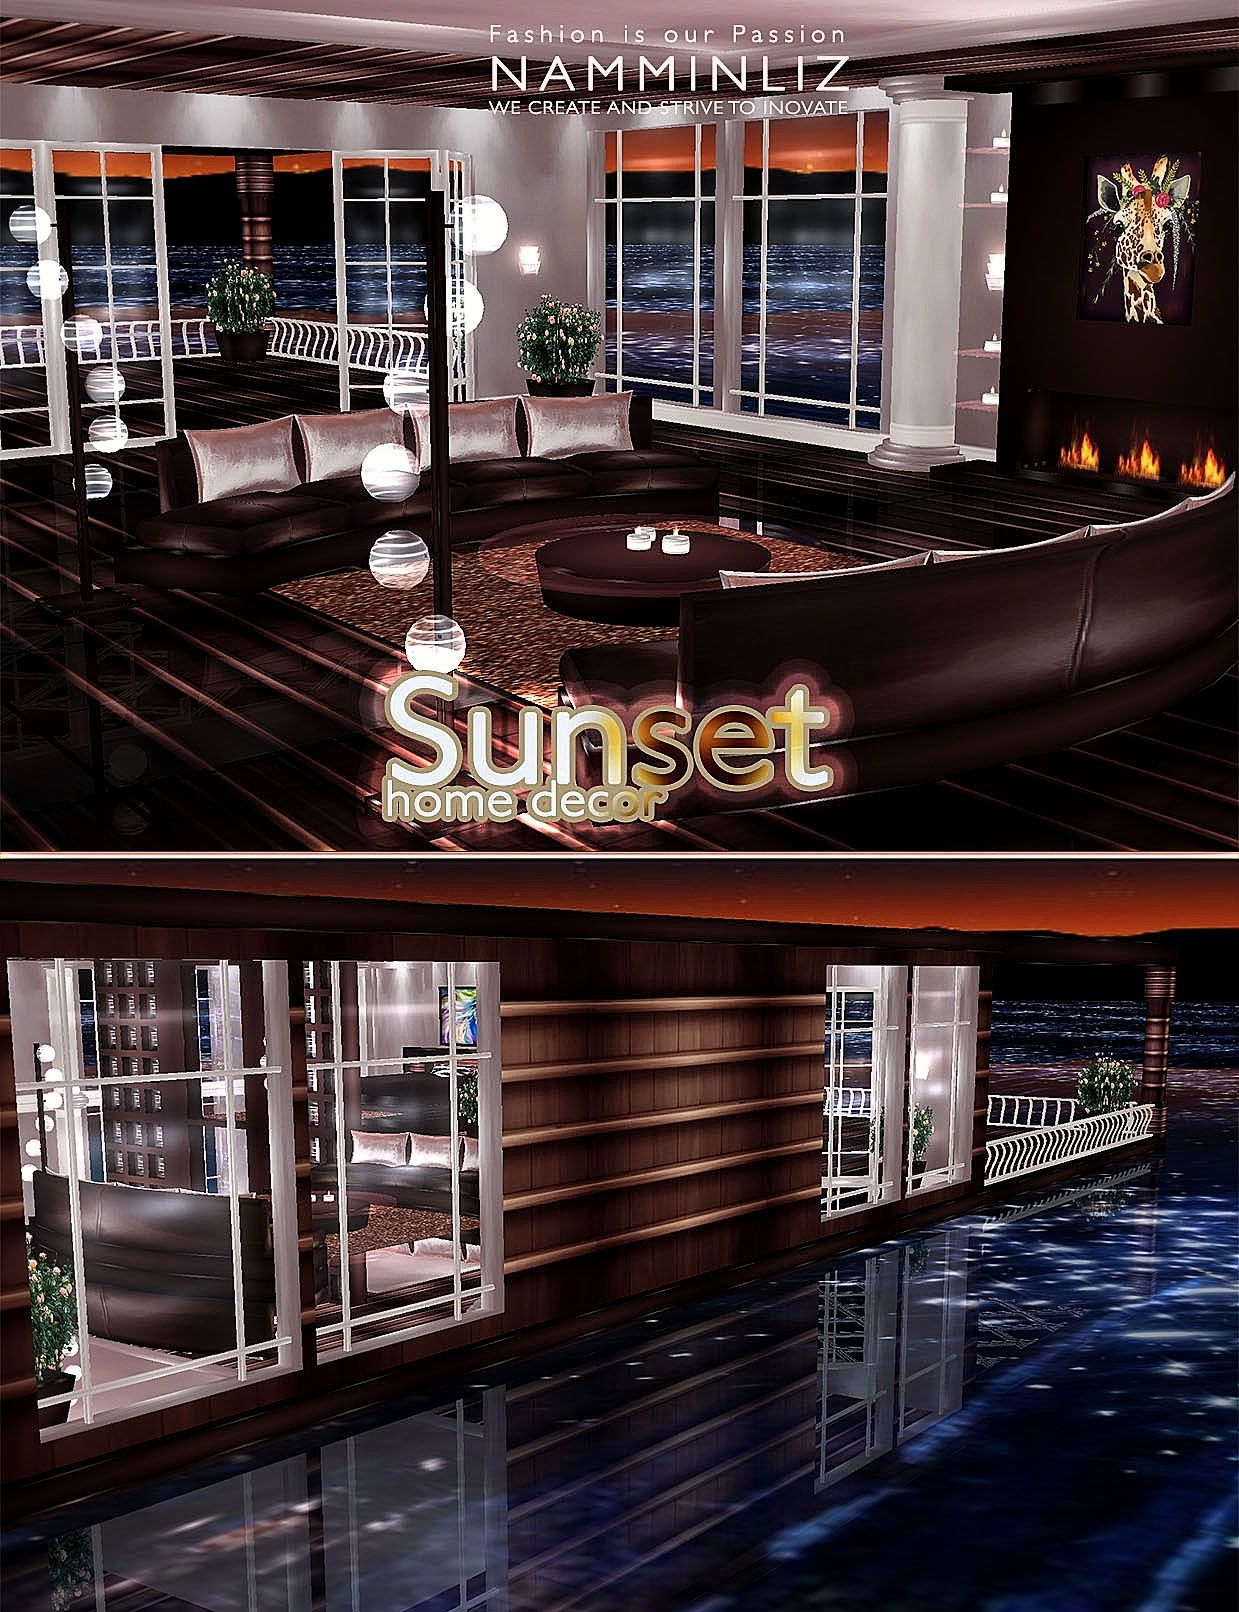 SunSet Home decor imvu 30 Textures PNG FULLY FURNISHED